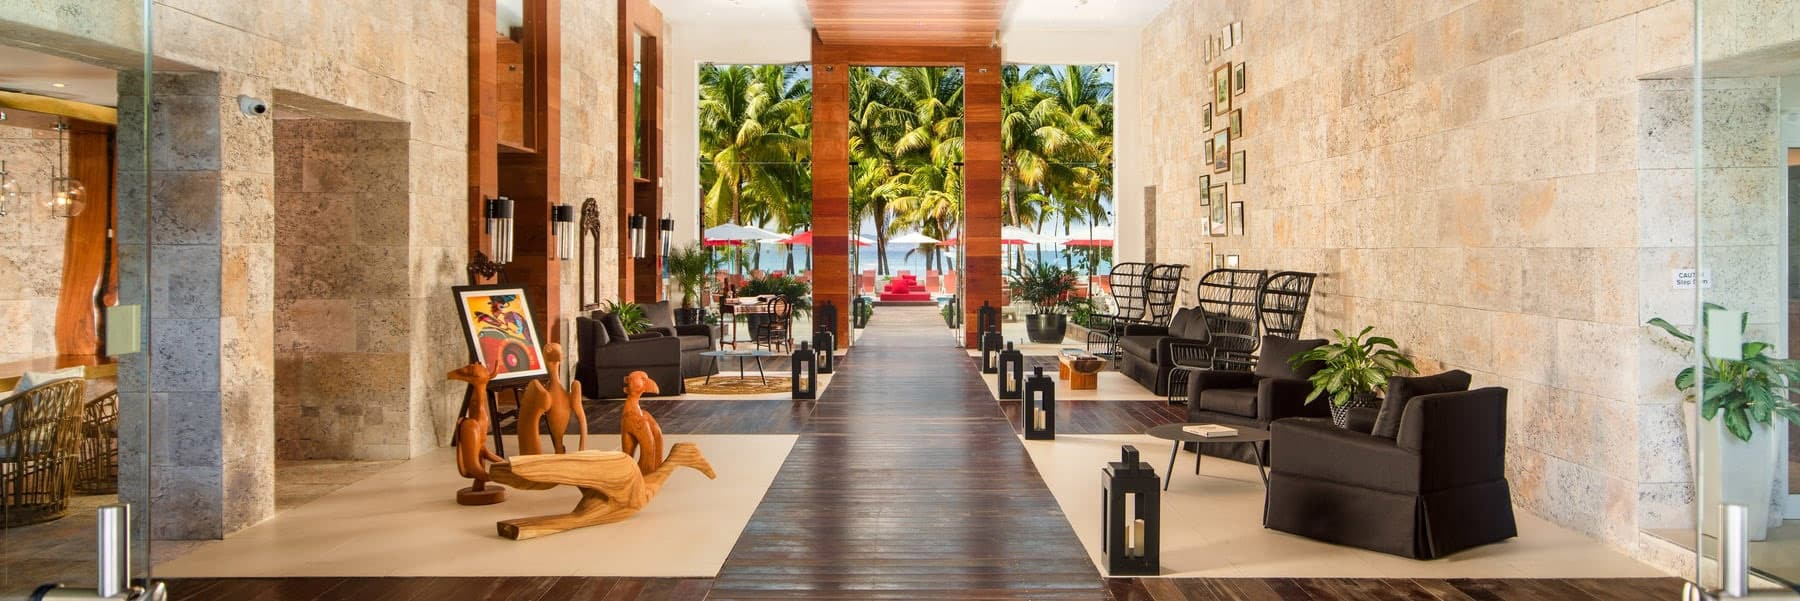 The chic lobby of the S Hotel Montego Bay has an open, breezy style